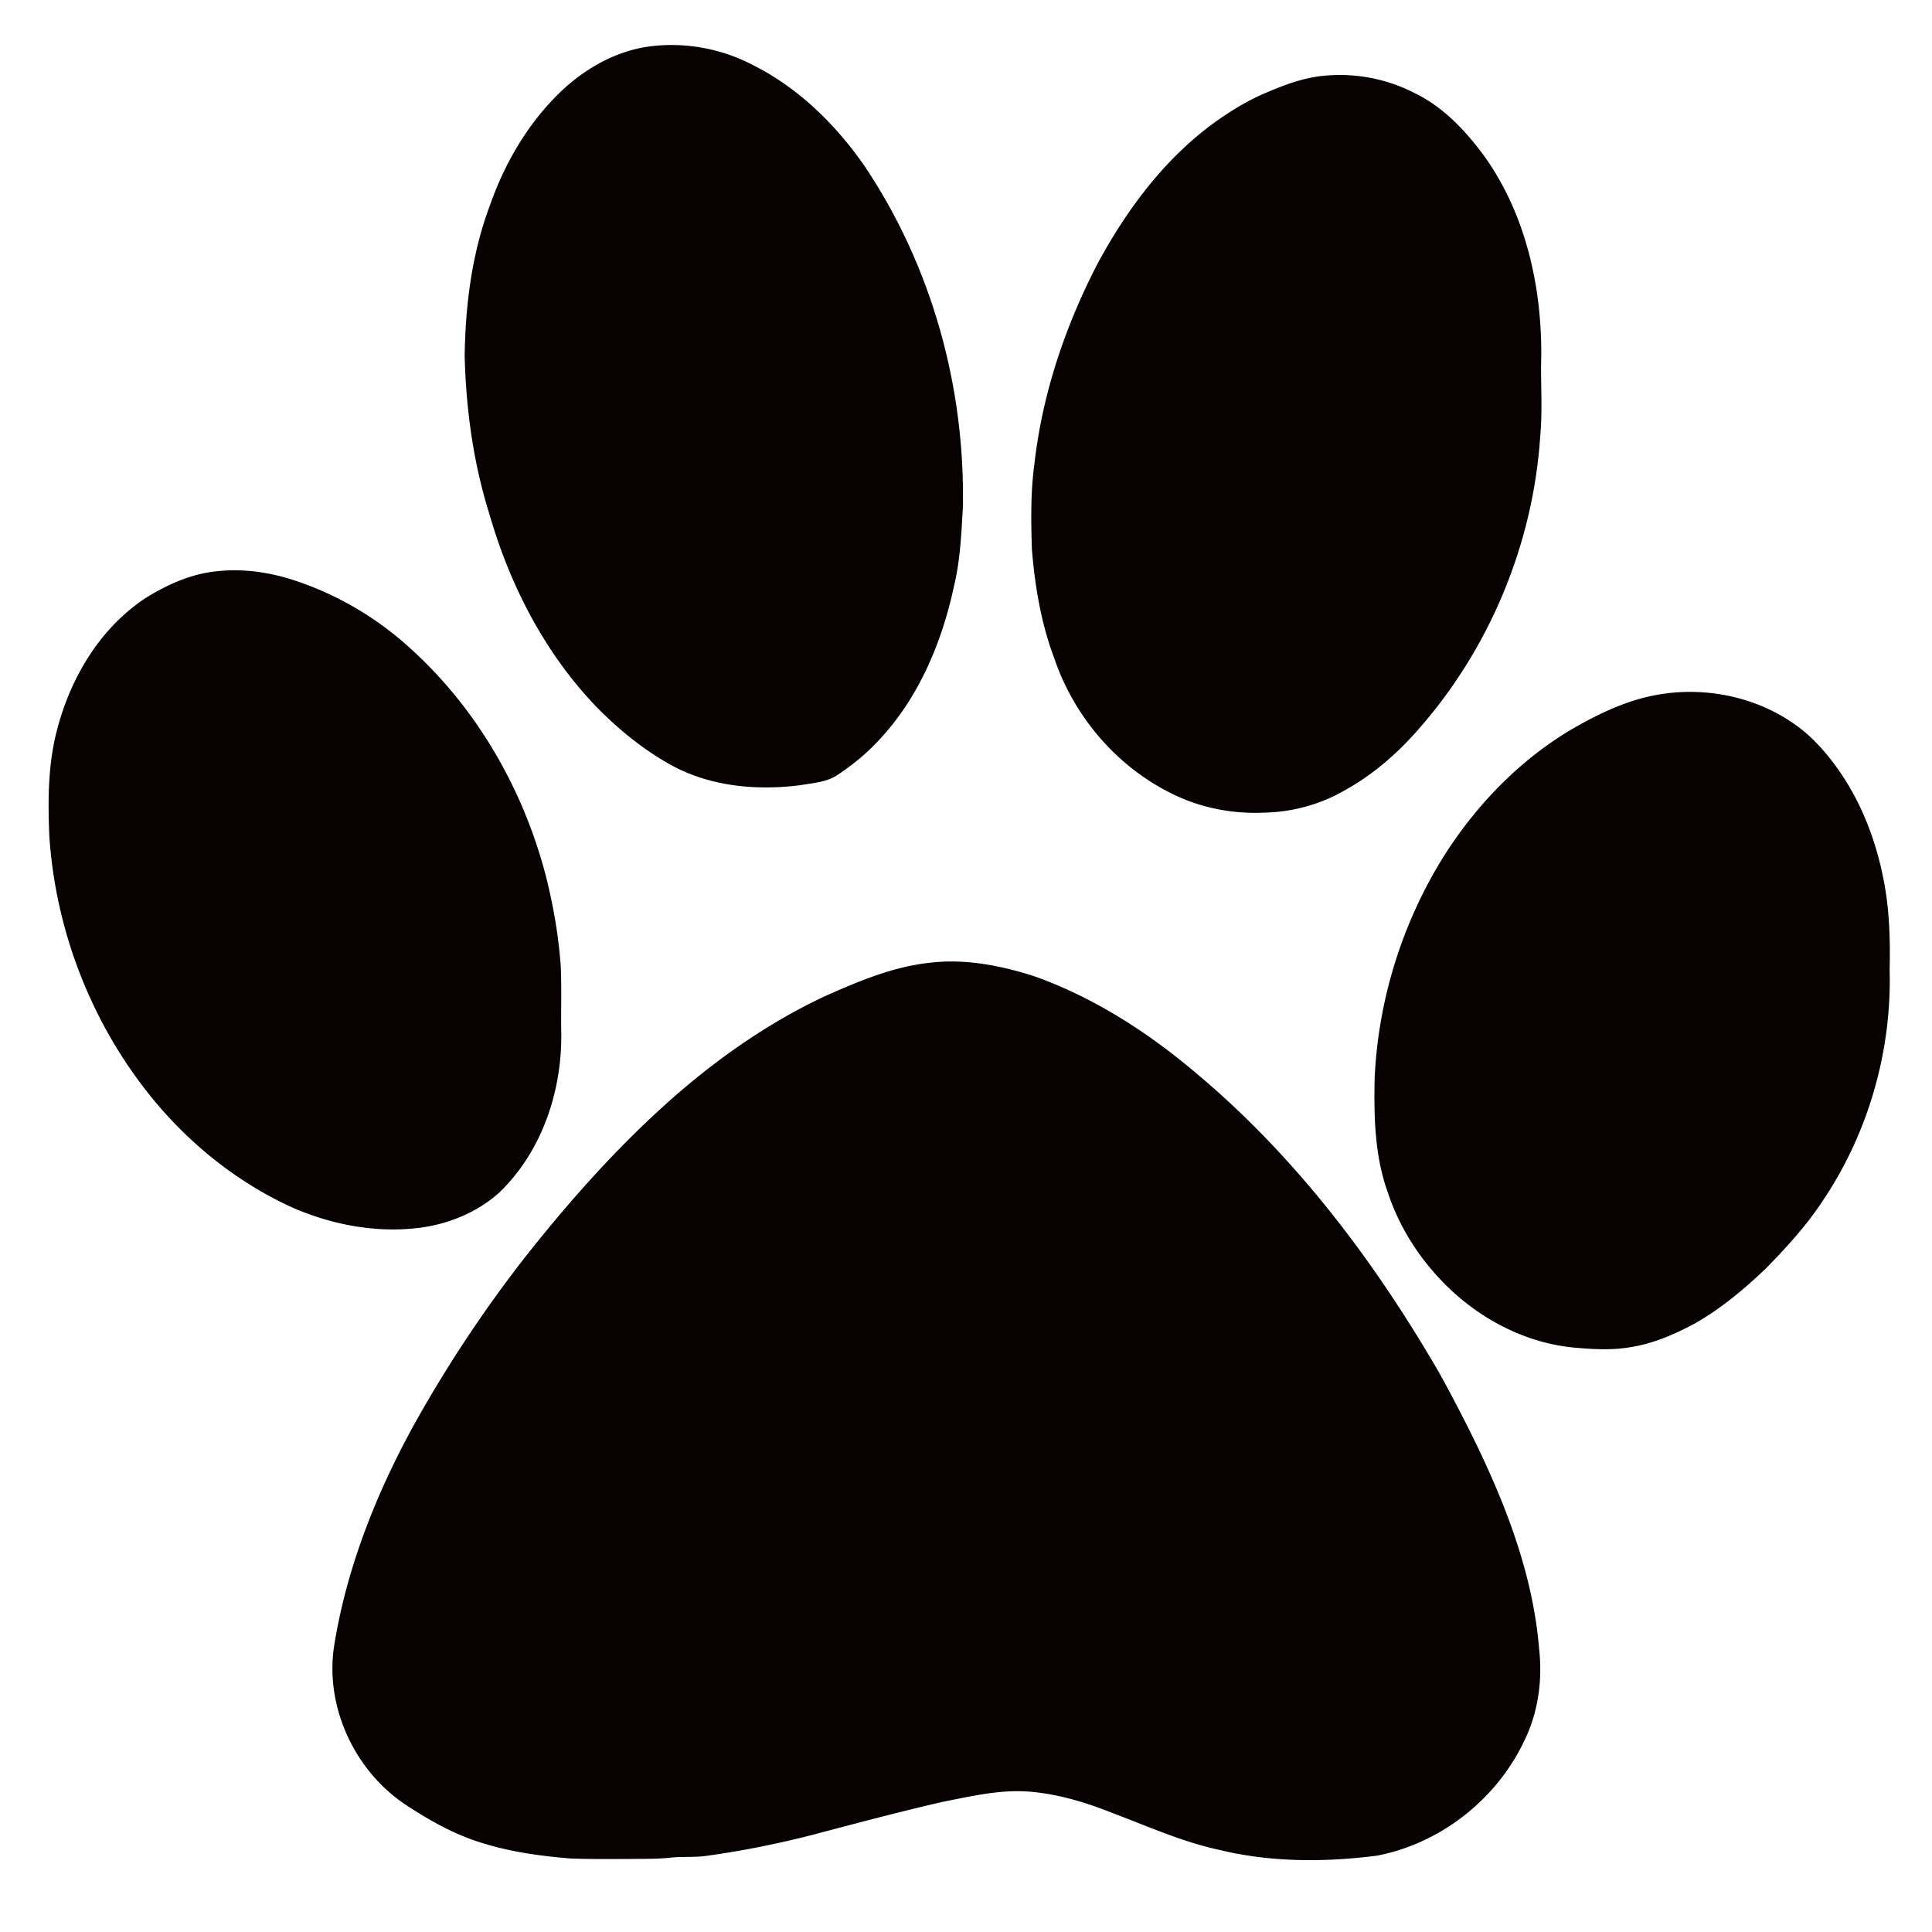 Puppy paws clipart image black and white Free Dog Paw Print, Download Free Clip Art, Free Clip Art on ... image black and white